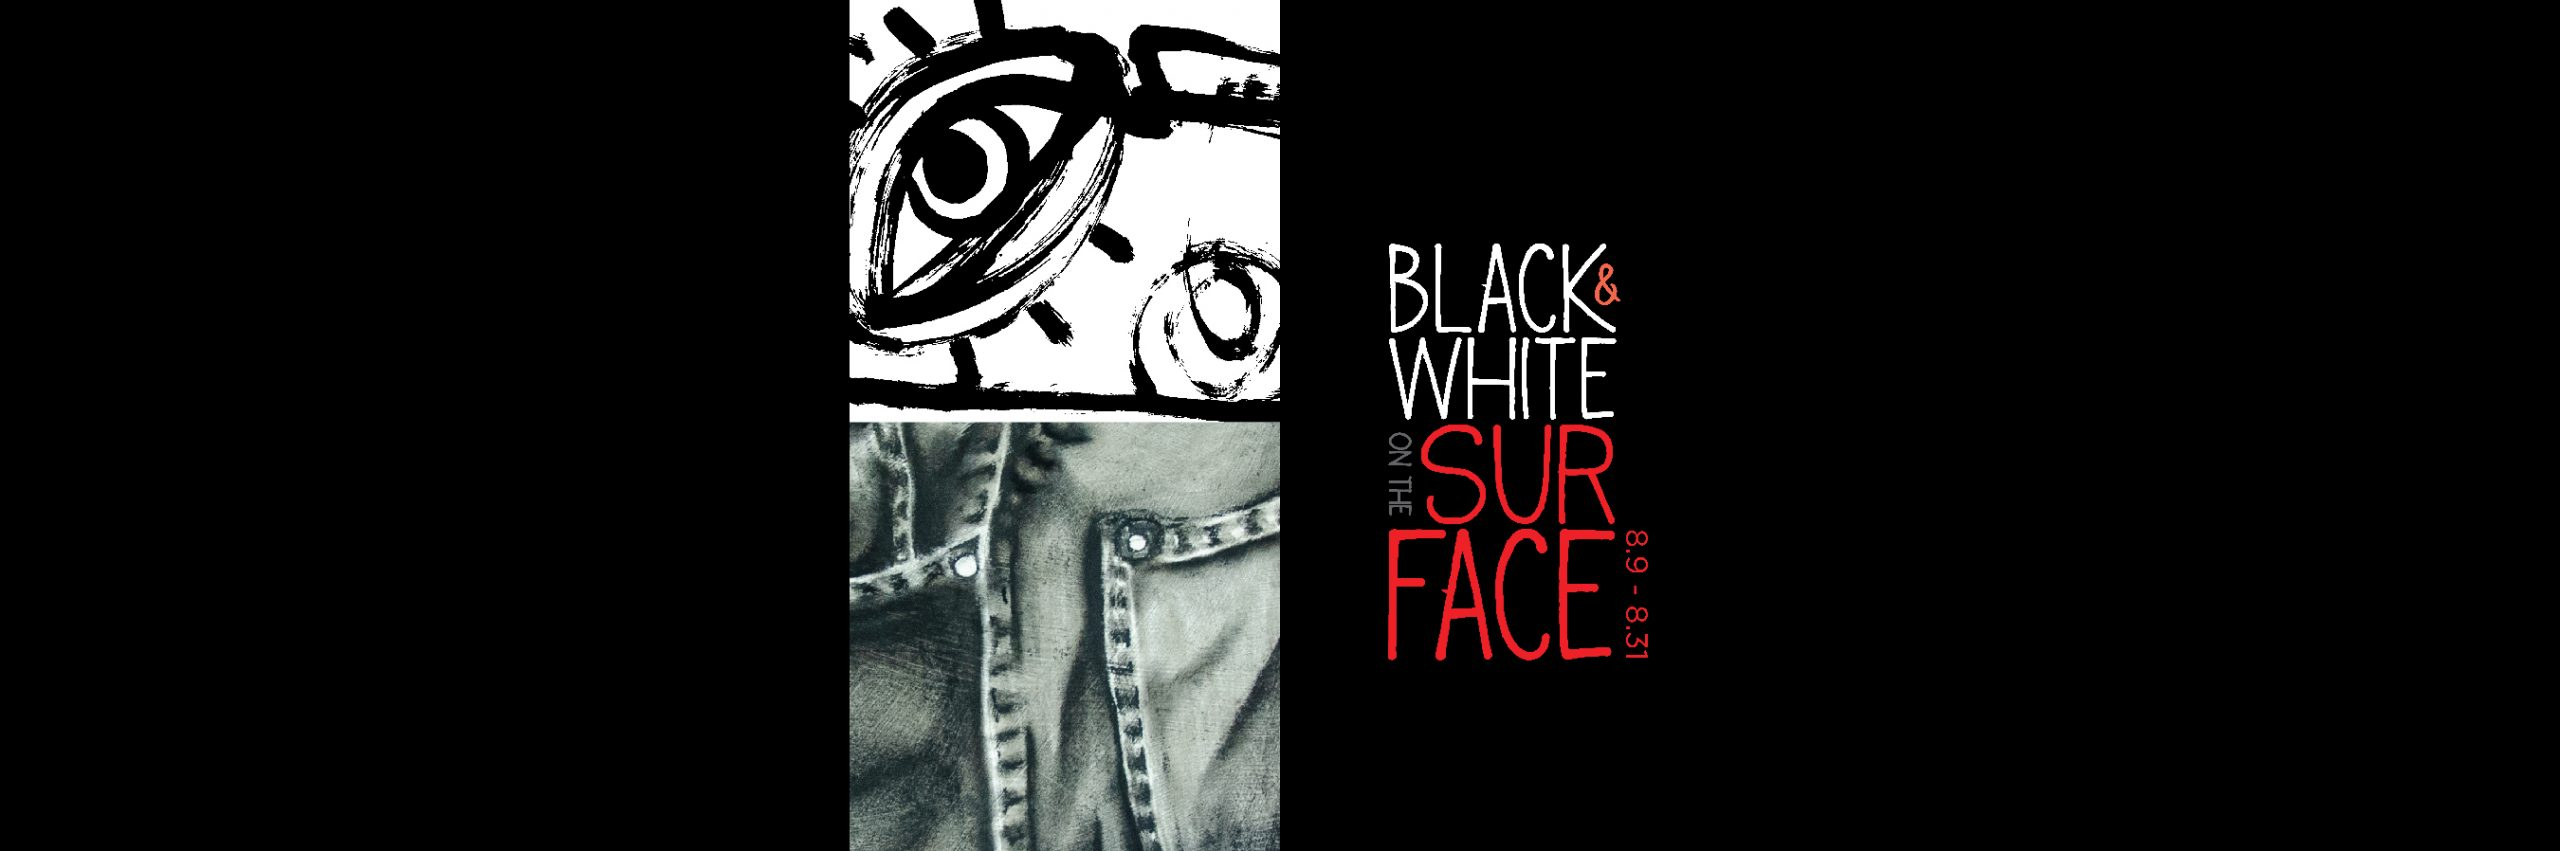 Black & White on the Surface, gallery graphic. August 9th thru August 31st